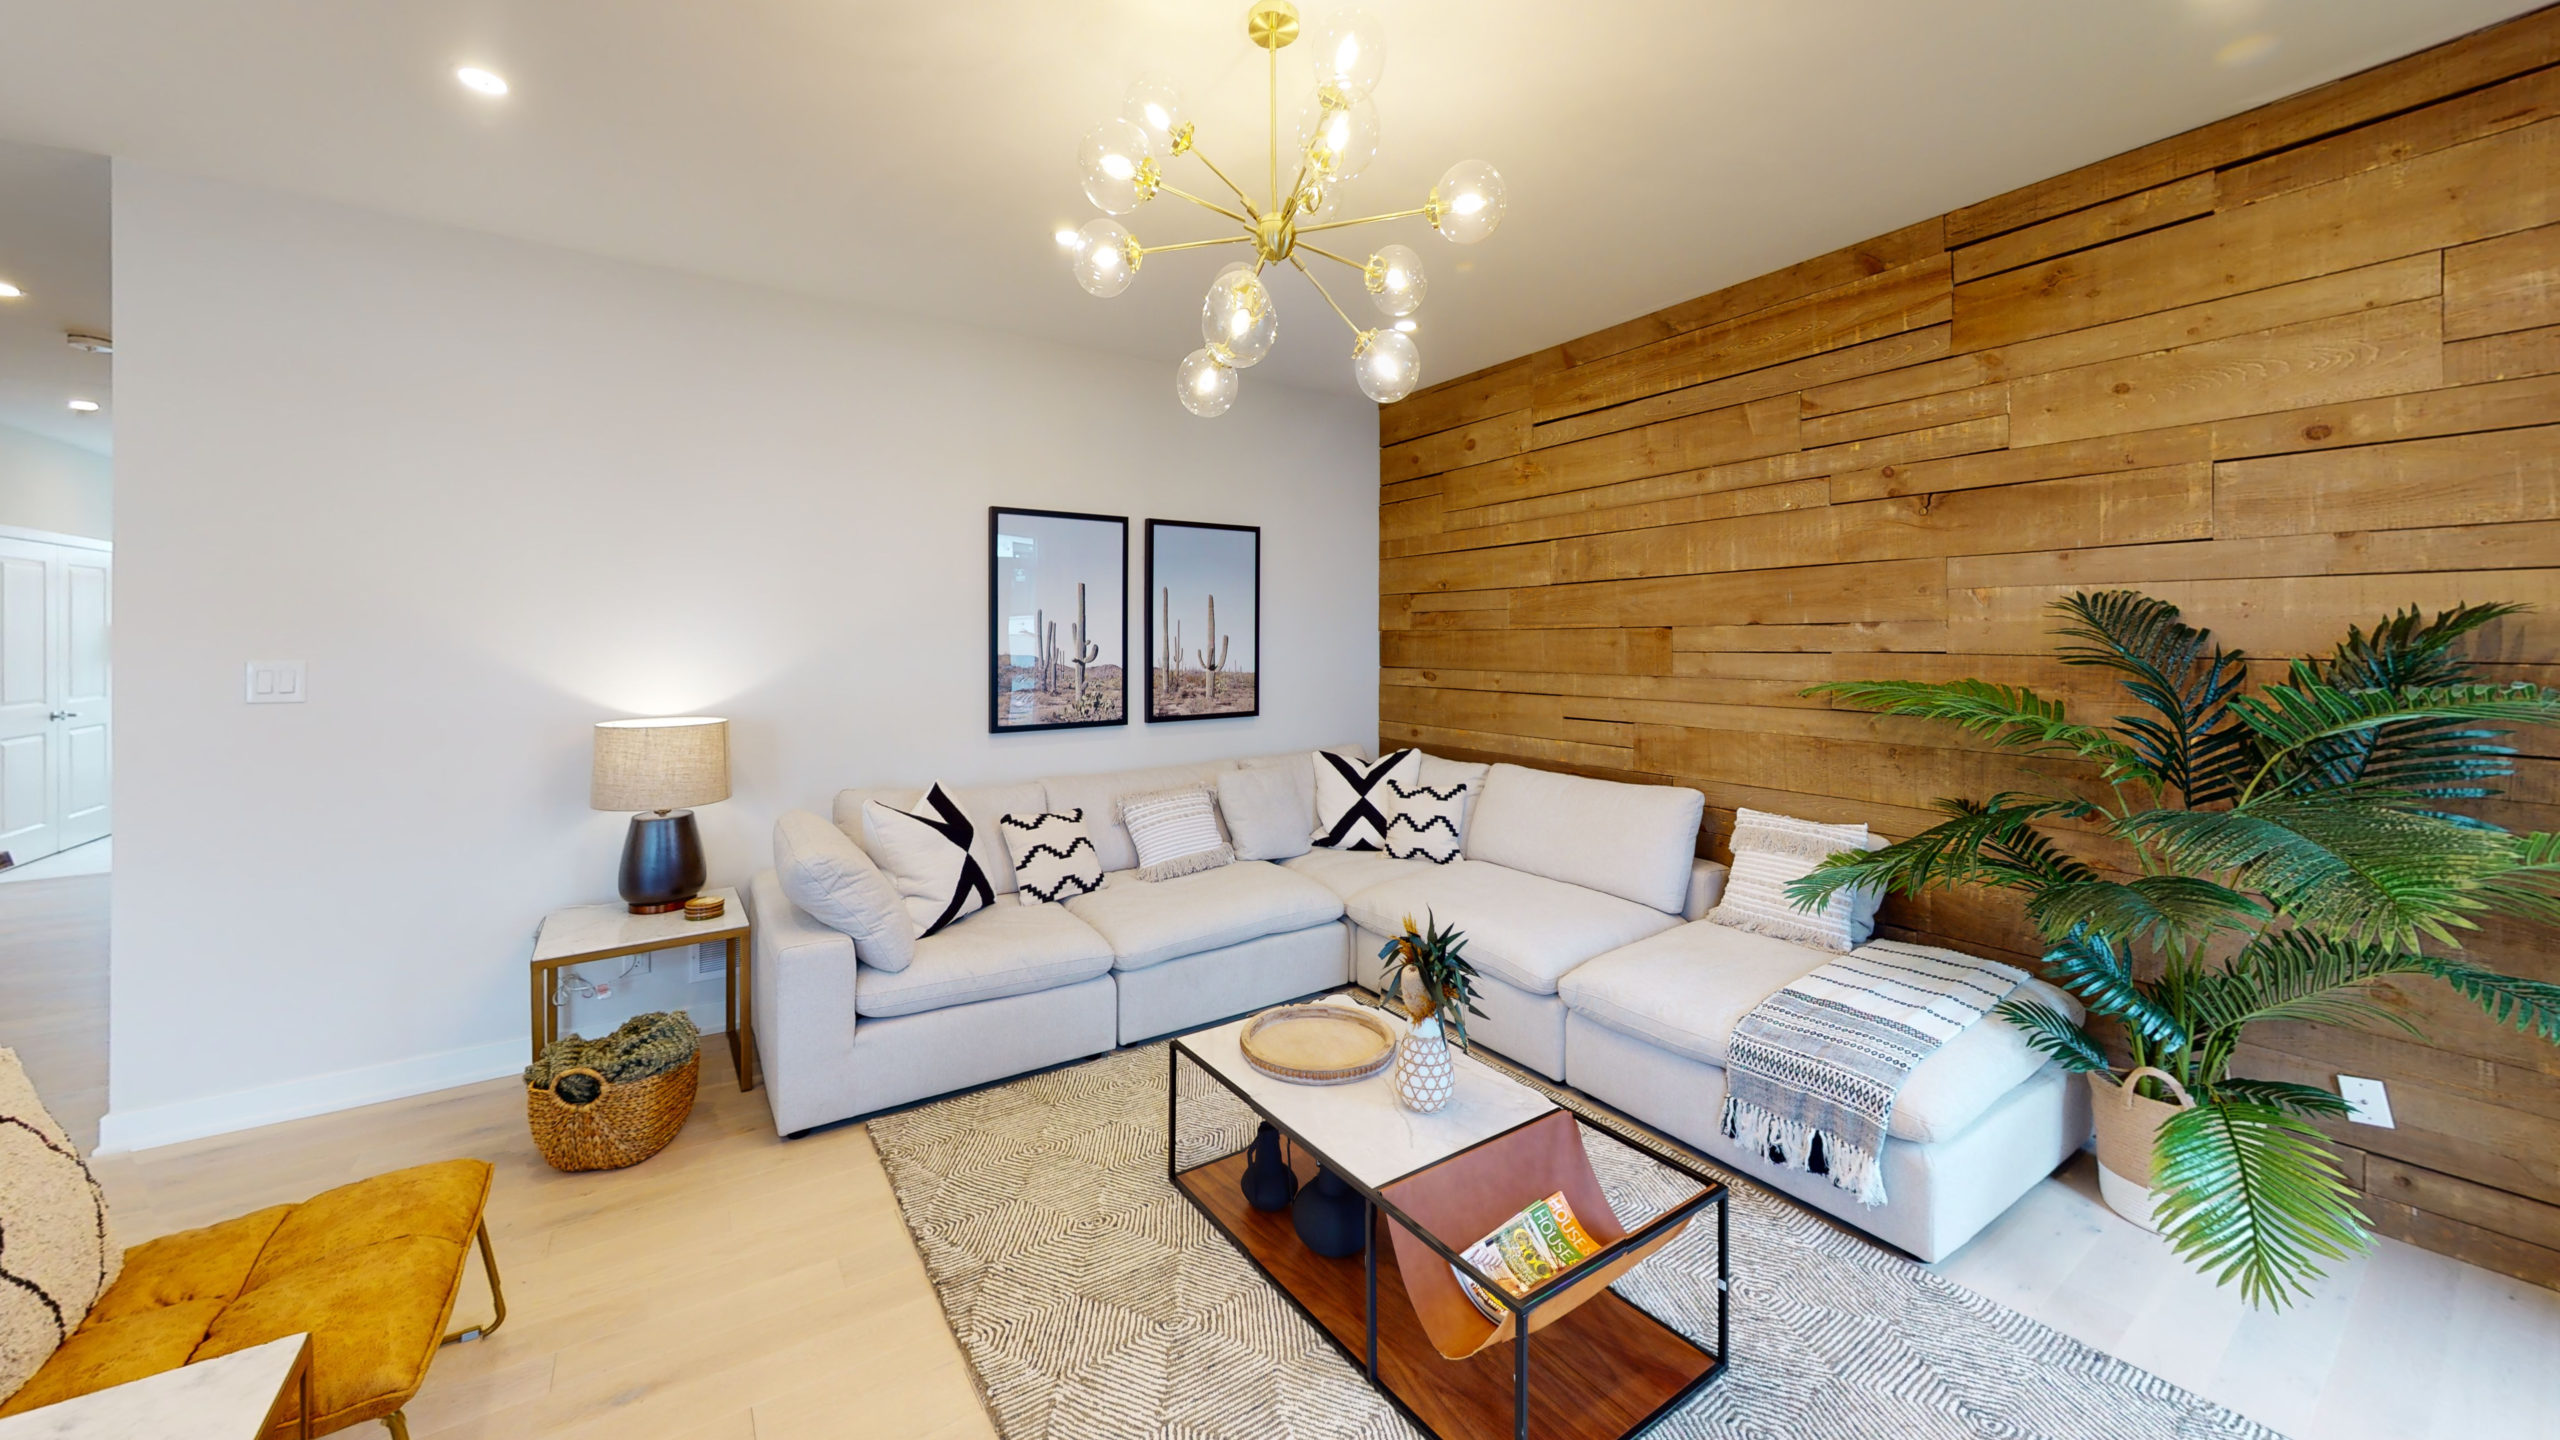 Brightly lit living room with leather couch and houseplant